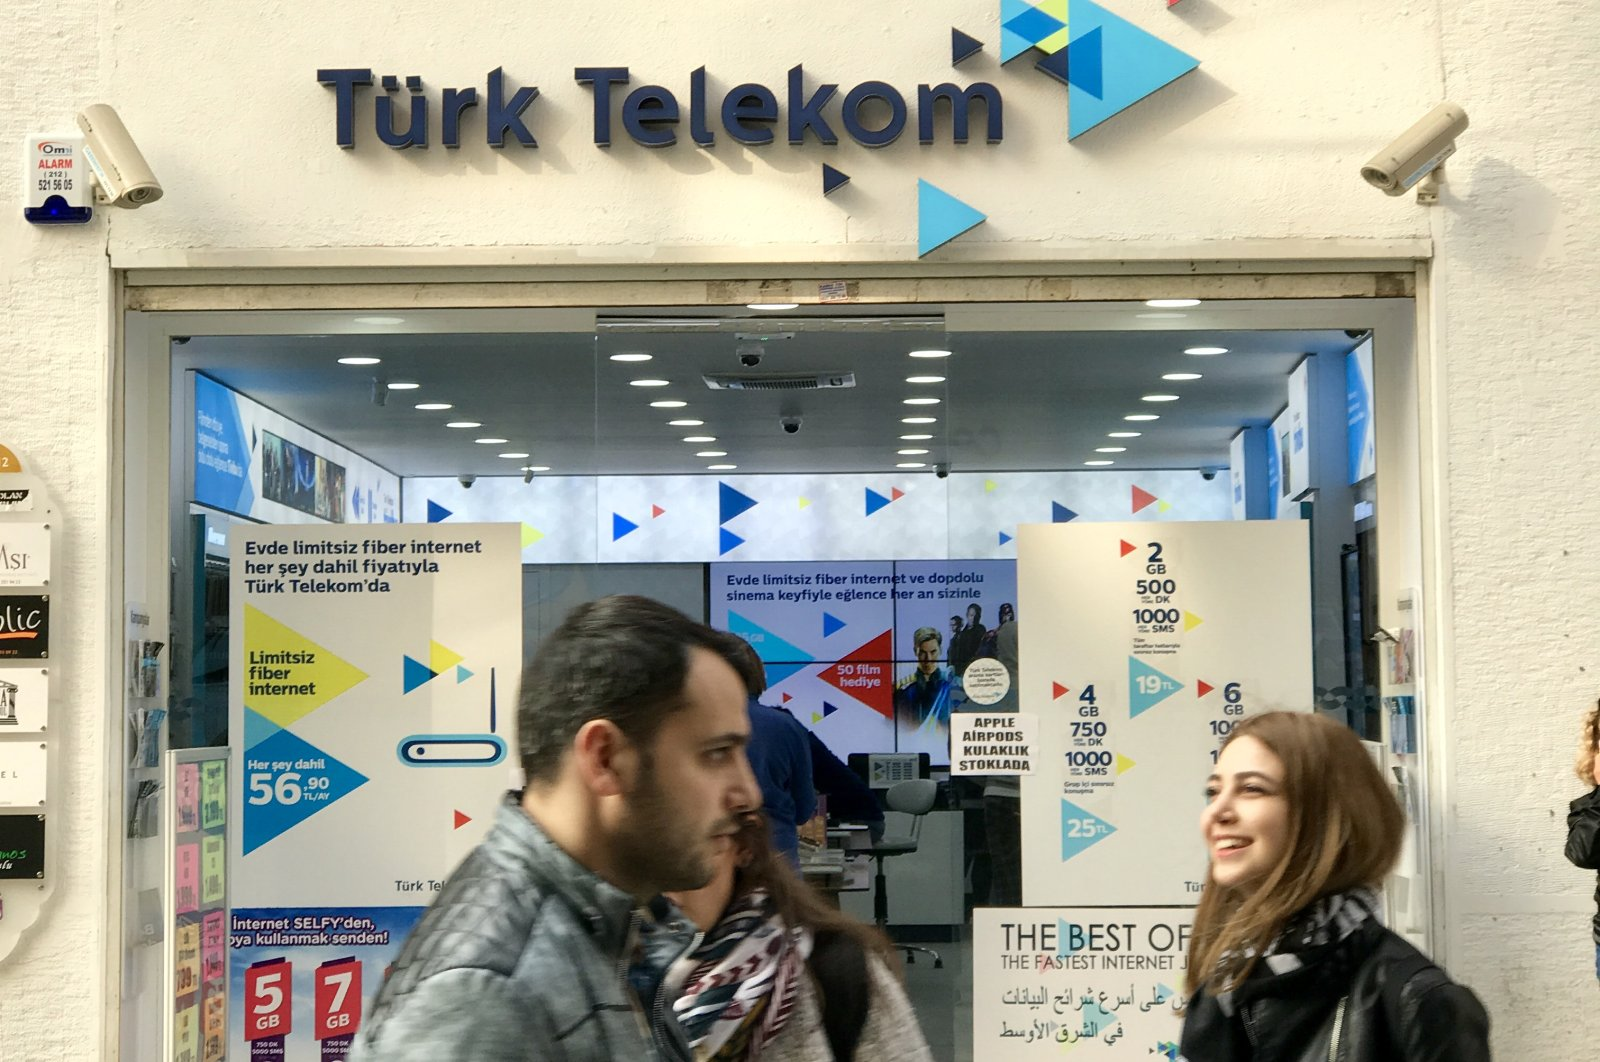 A Türk Telekom store is seen in Istanbul's Beyoğlu district in this undated photo. (iStock Photo)